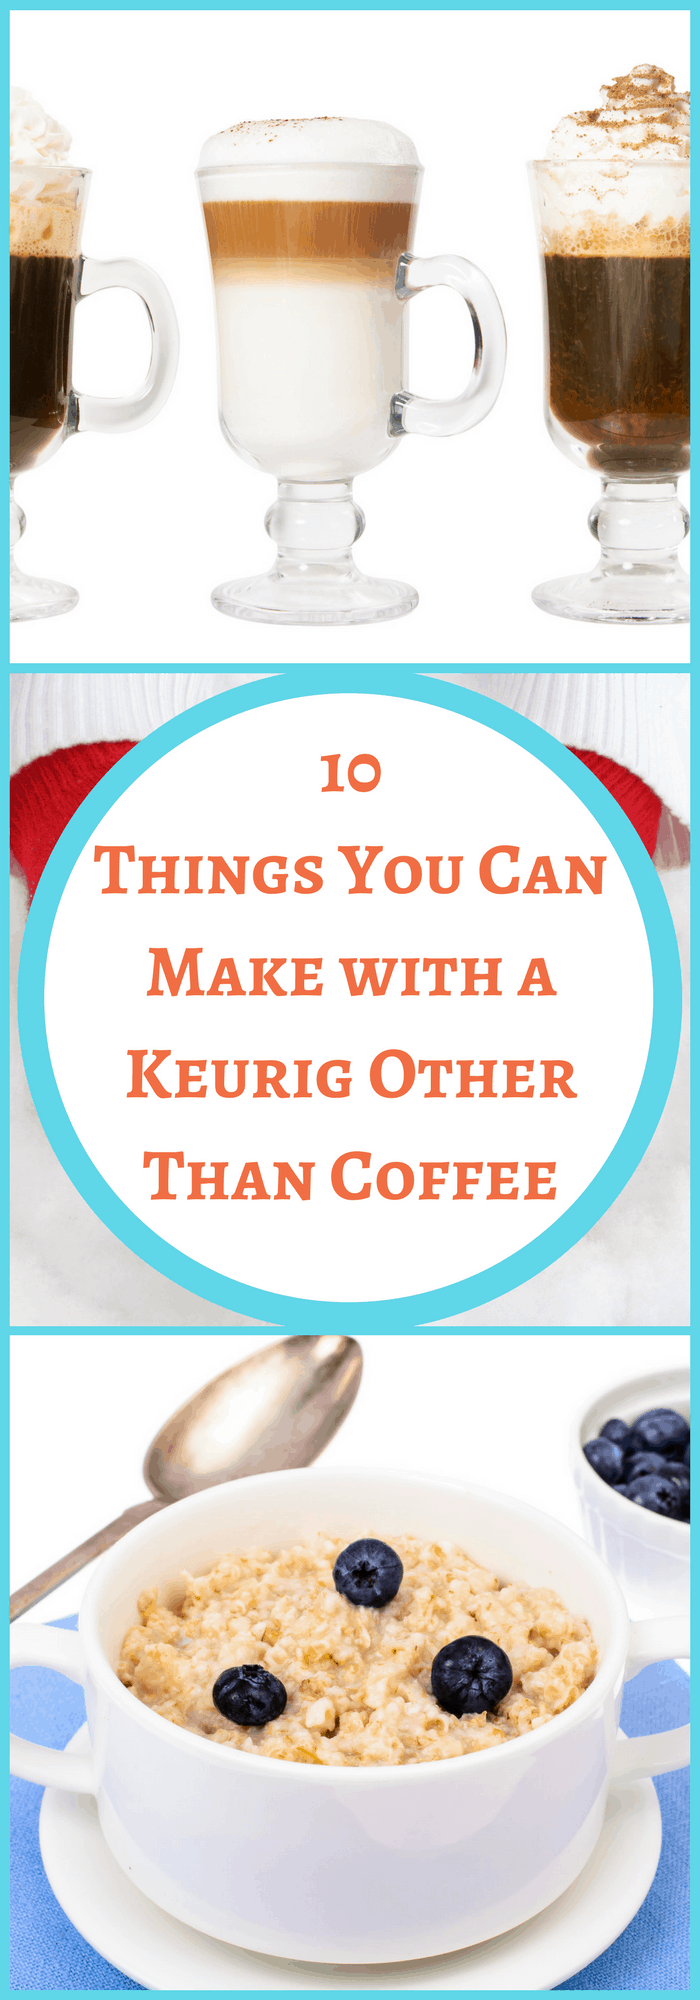 Food and Drink--10 Things You Can Make With A Keurig Other Than Coffee--The Organized Mom